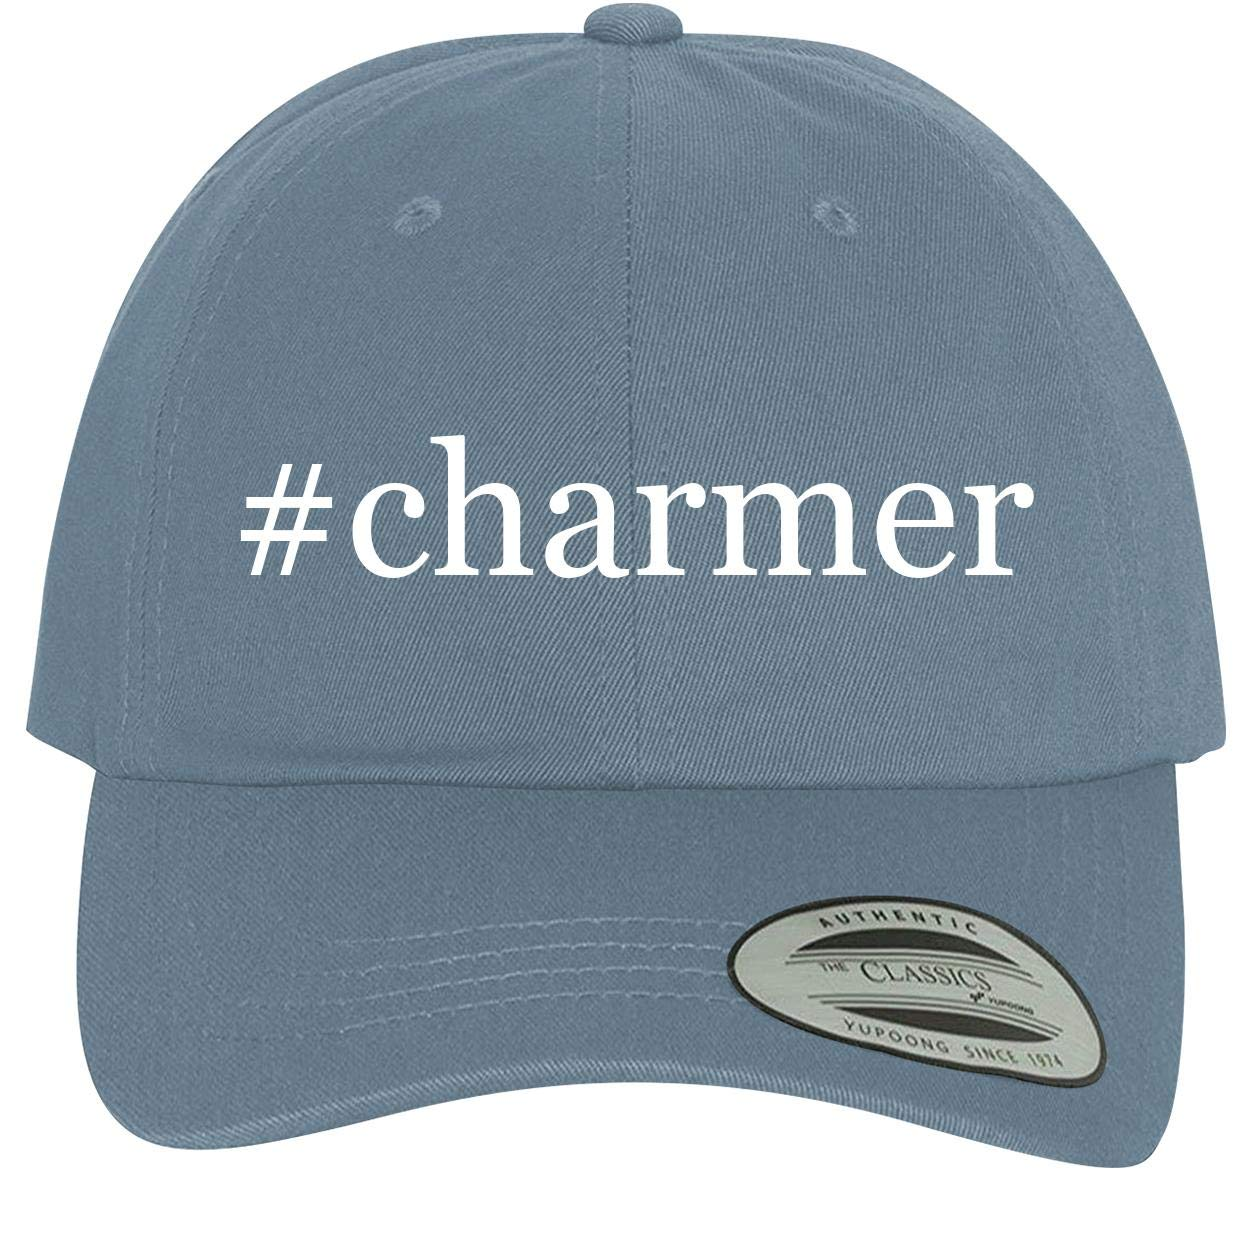 Comfortable Dad Hat Baseball Cap BH Cool Designs #Charmer